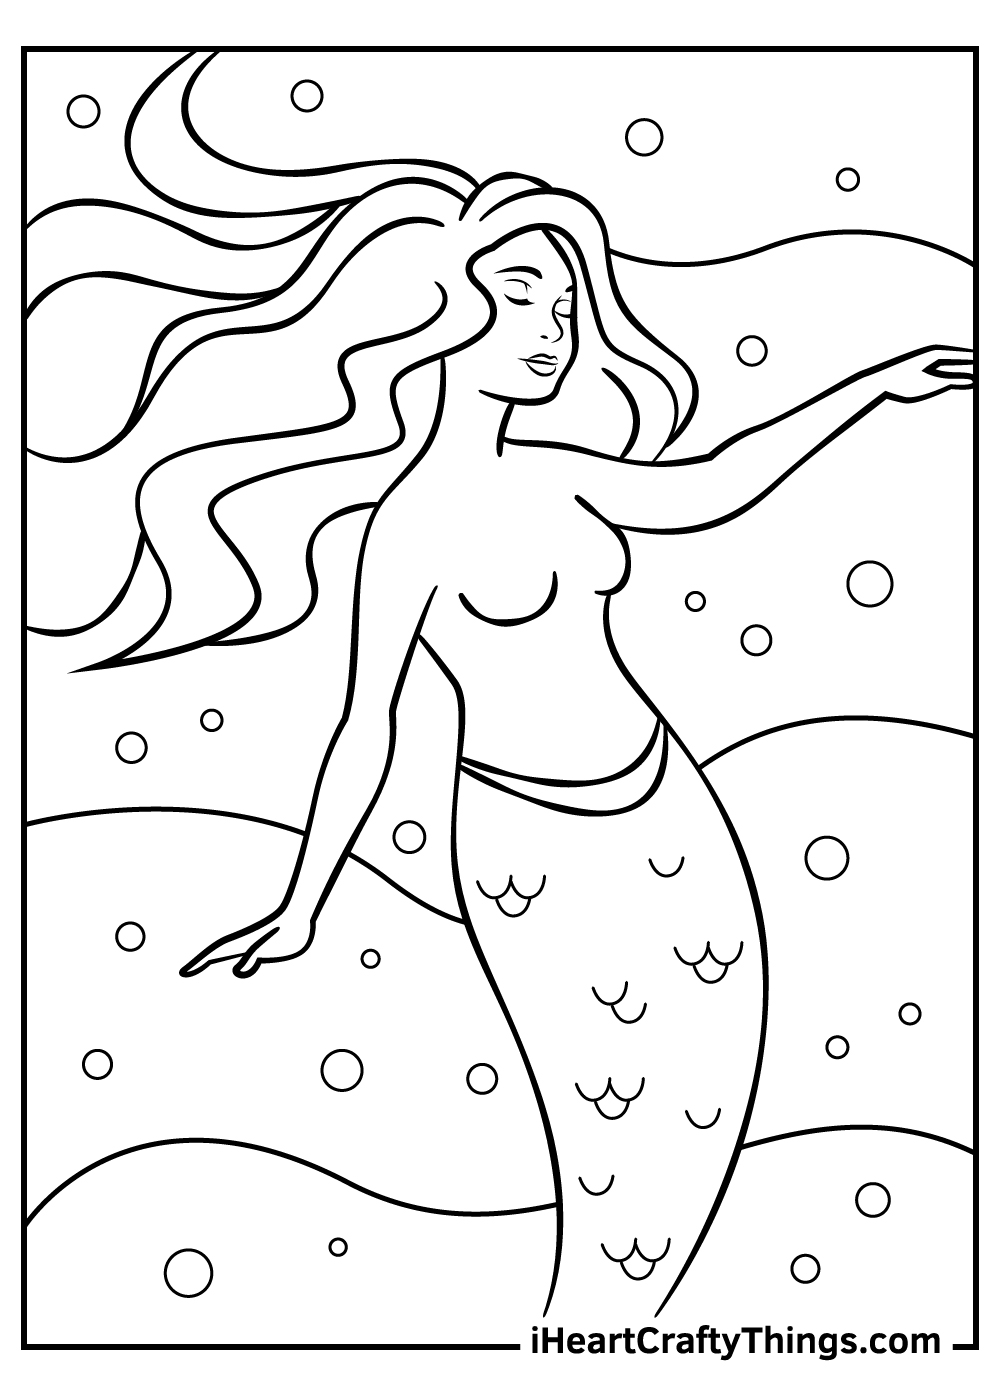 Printable Fantasy And Mythology Coloring Pages Updated 2021